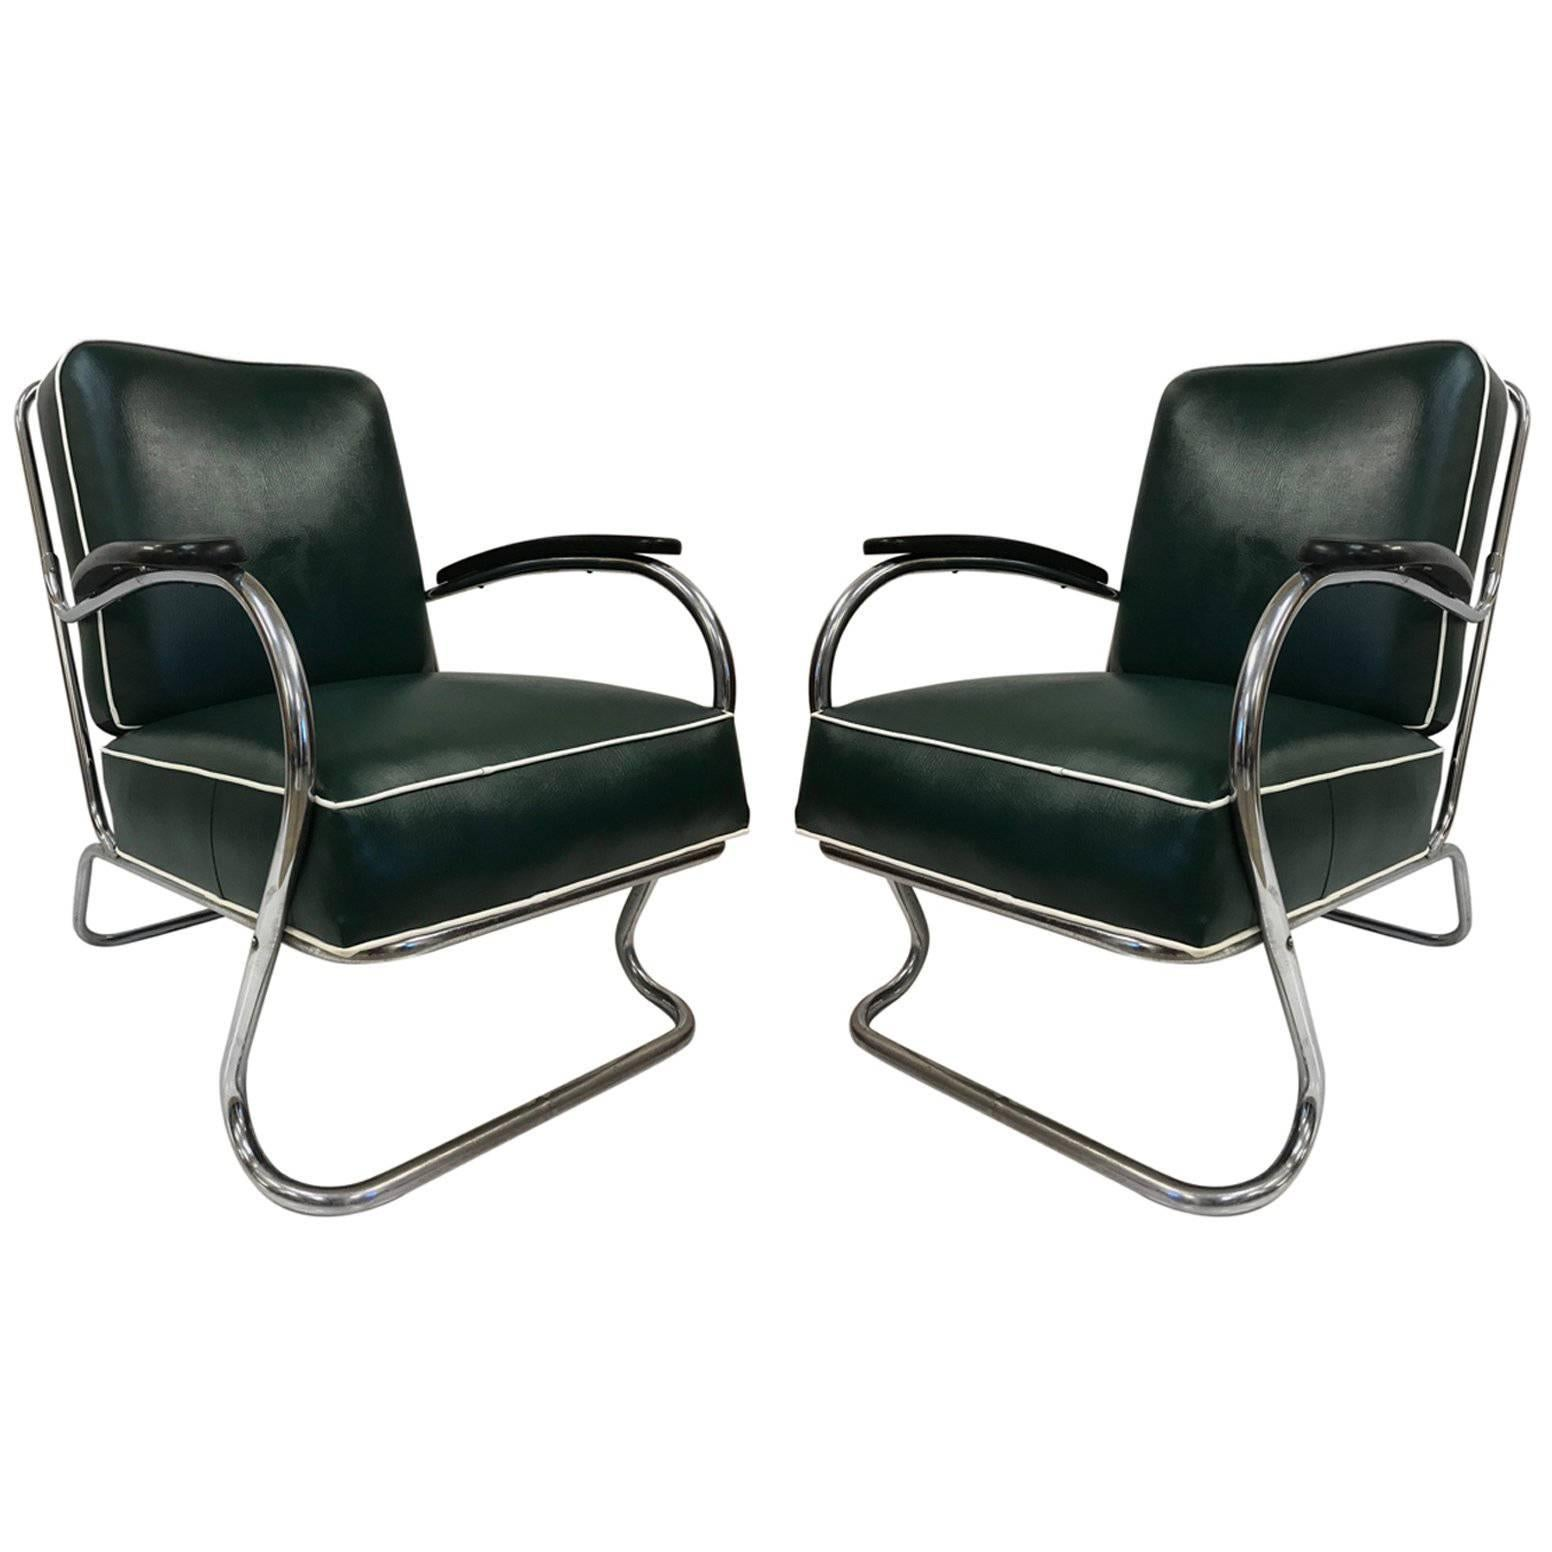 Sessel Industrial Kem Weber Furniture Chairs Sofas Tables More 23 For Sale At